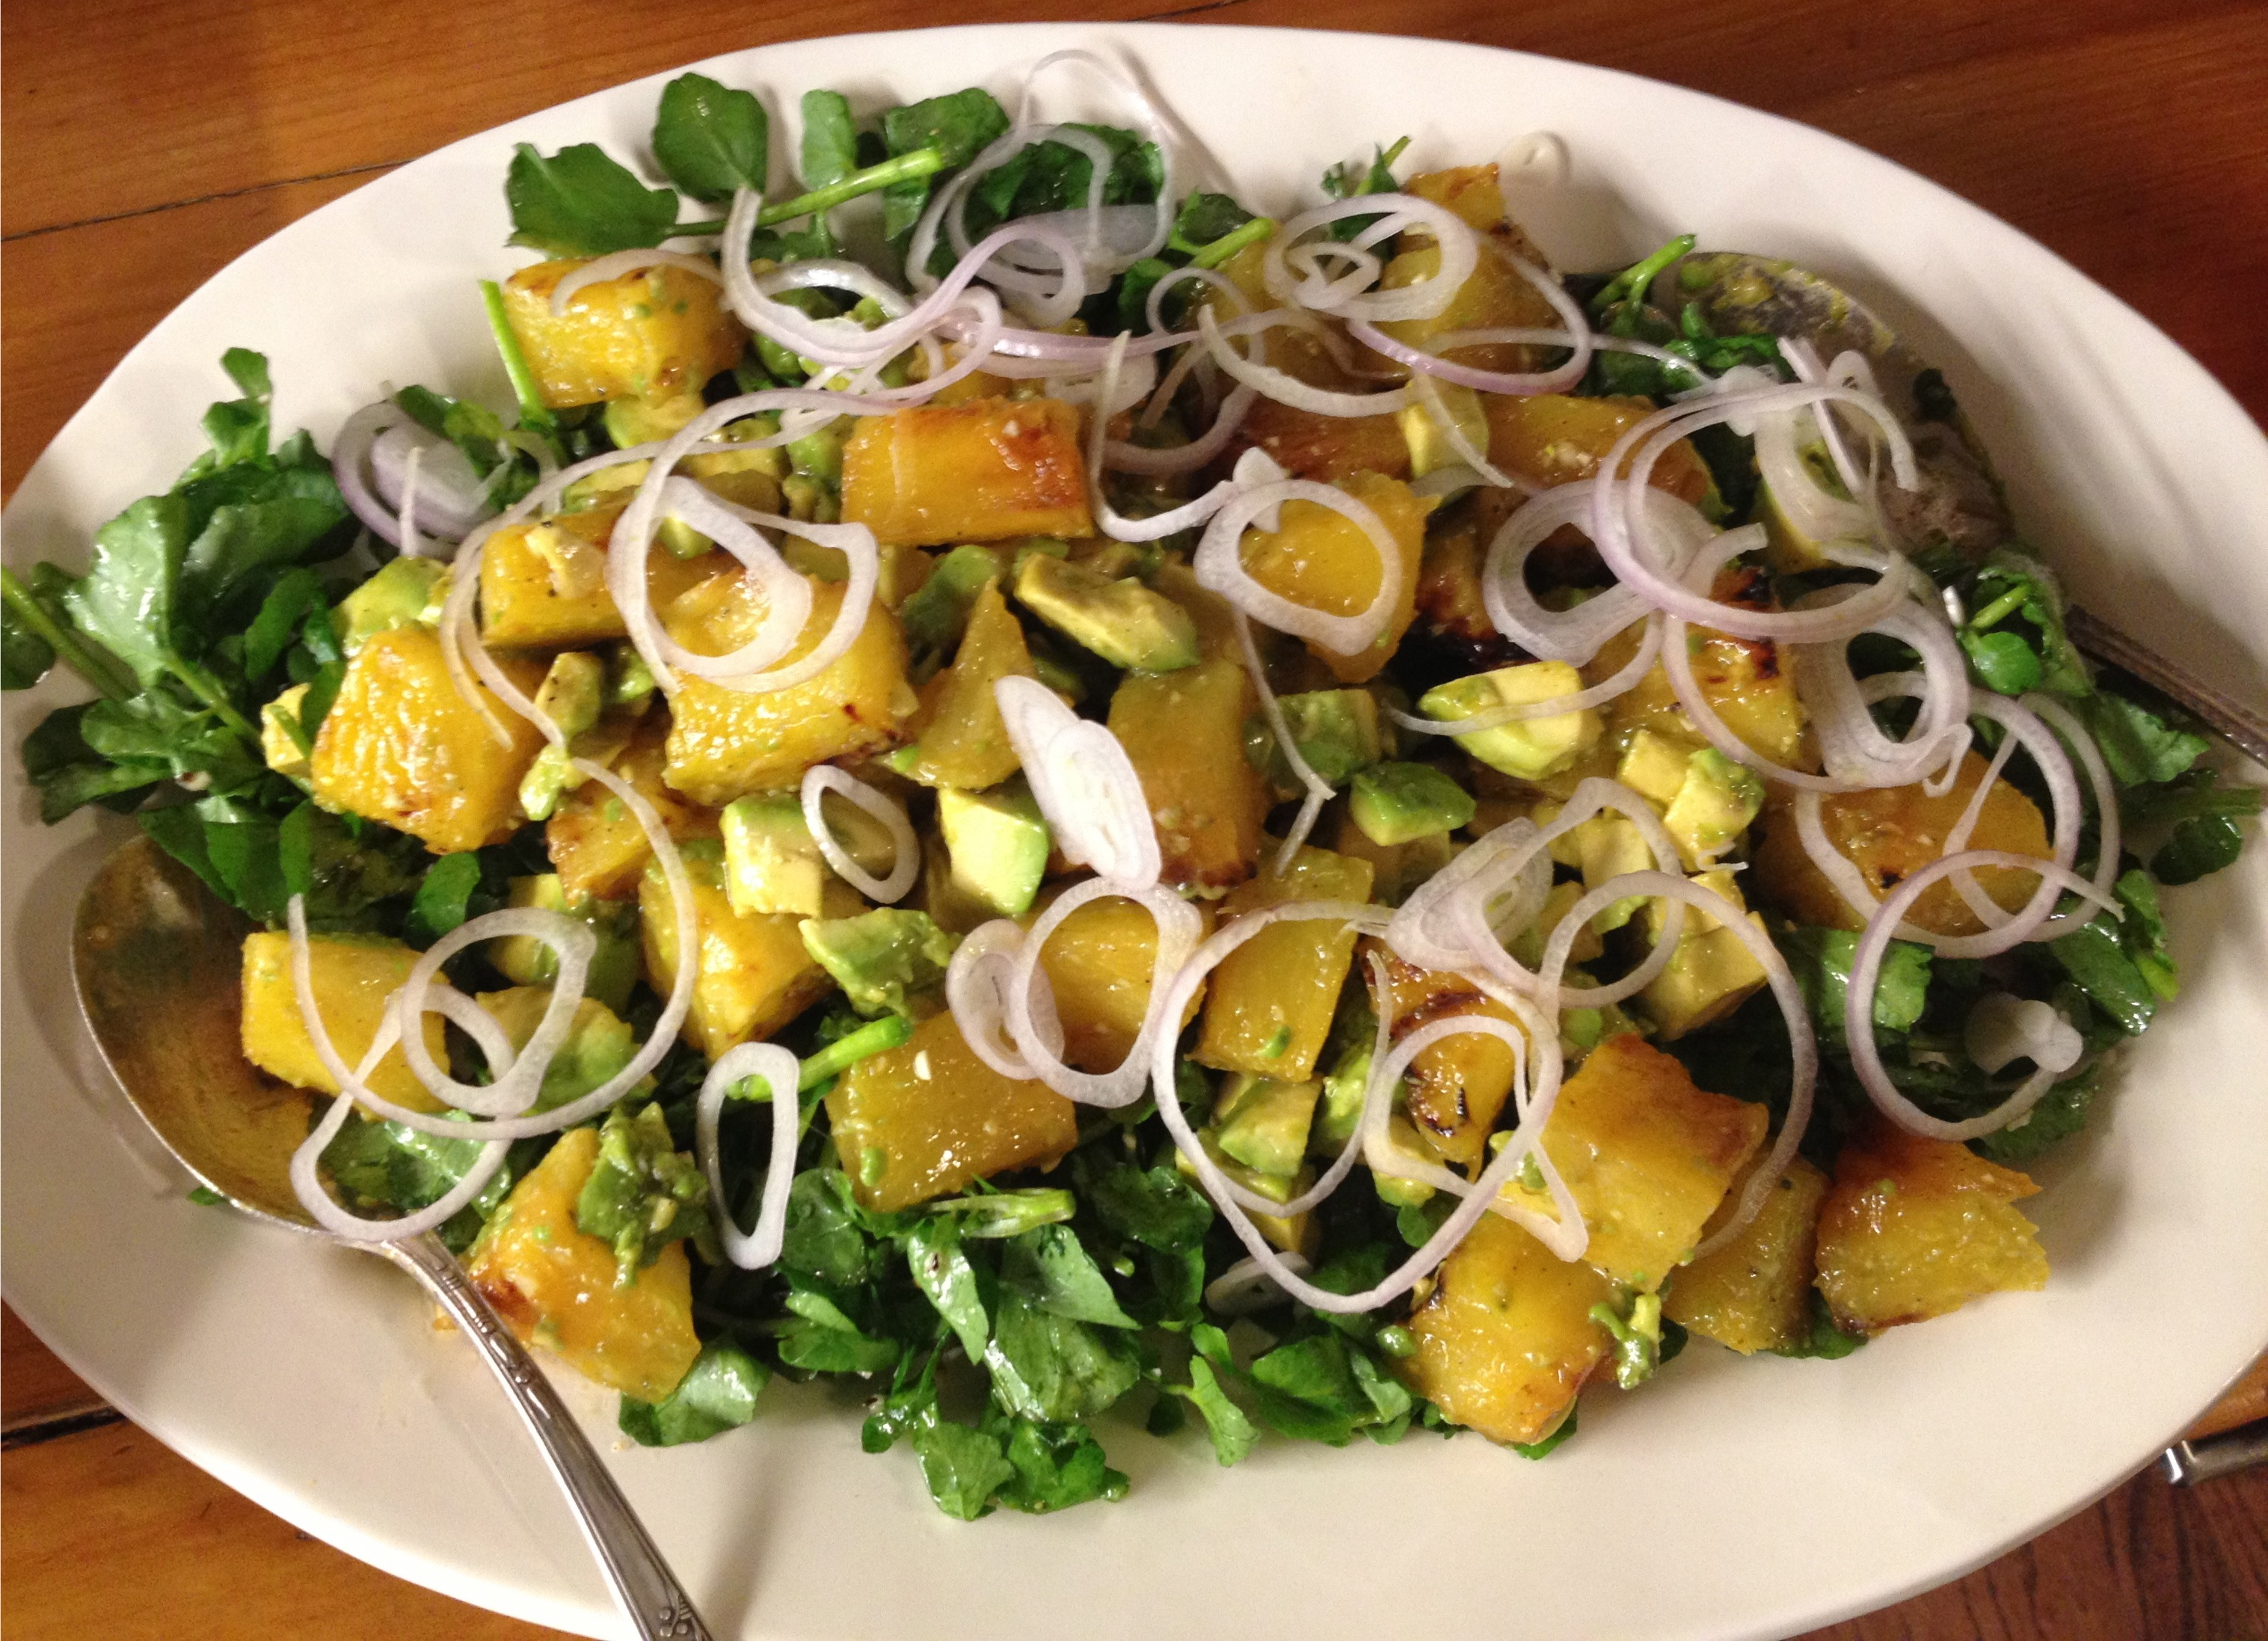 Salad With Watercress, Oranges, Avocado, And Almonds, With Citrus ...